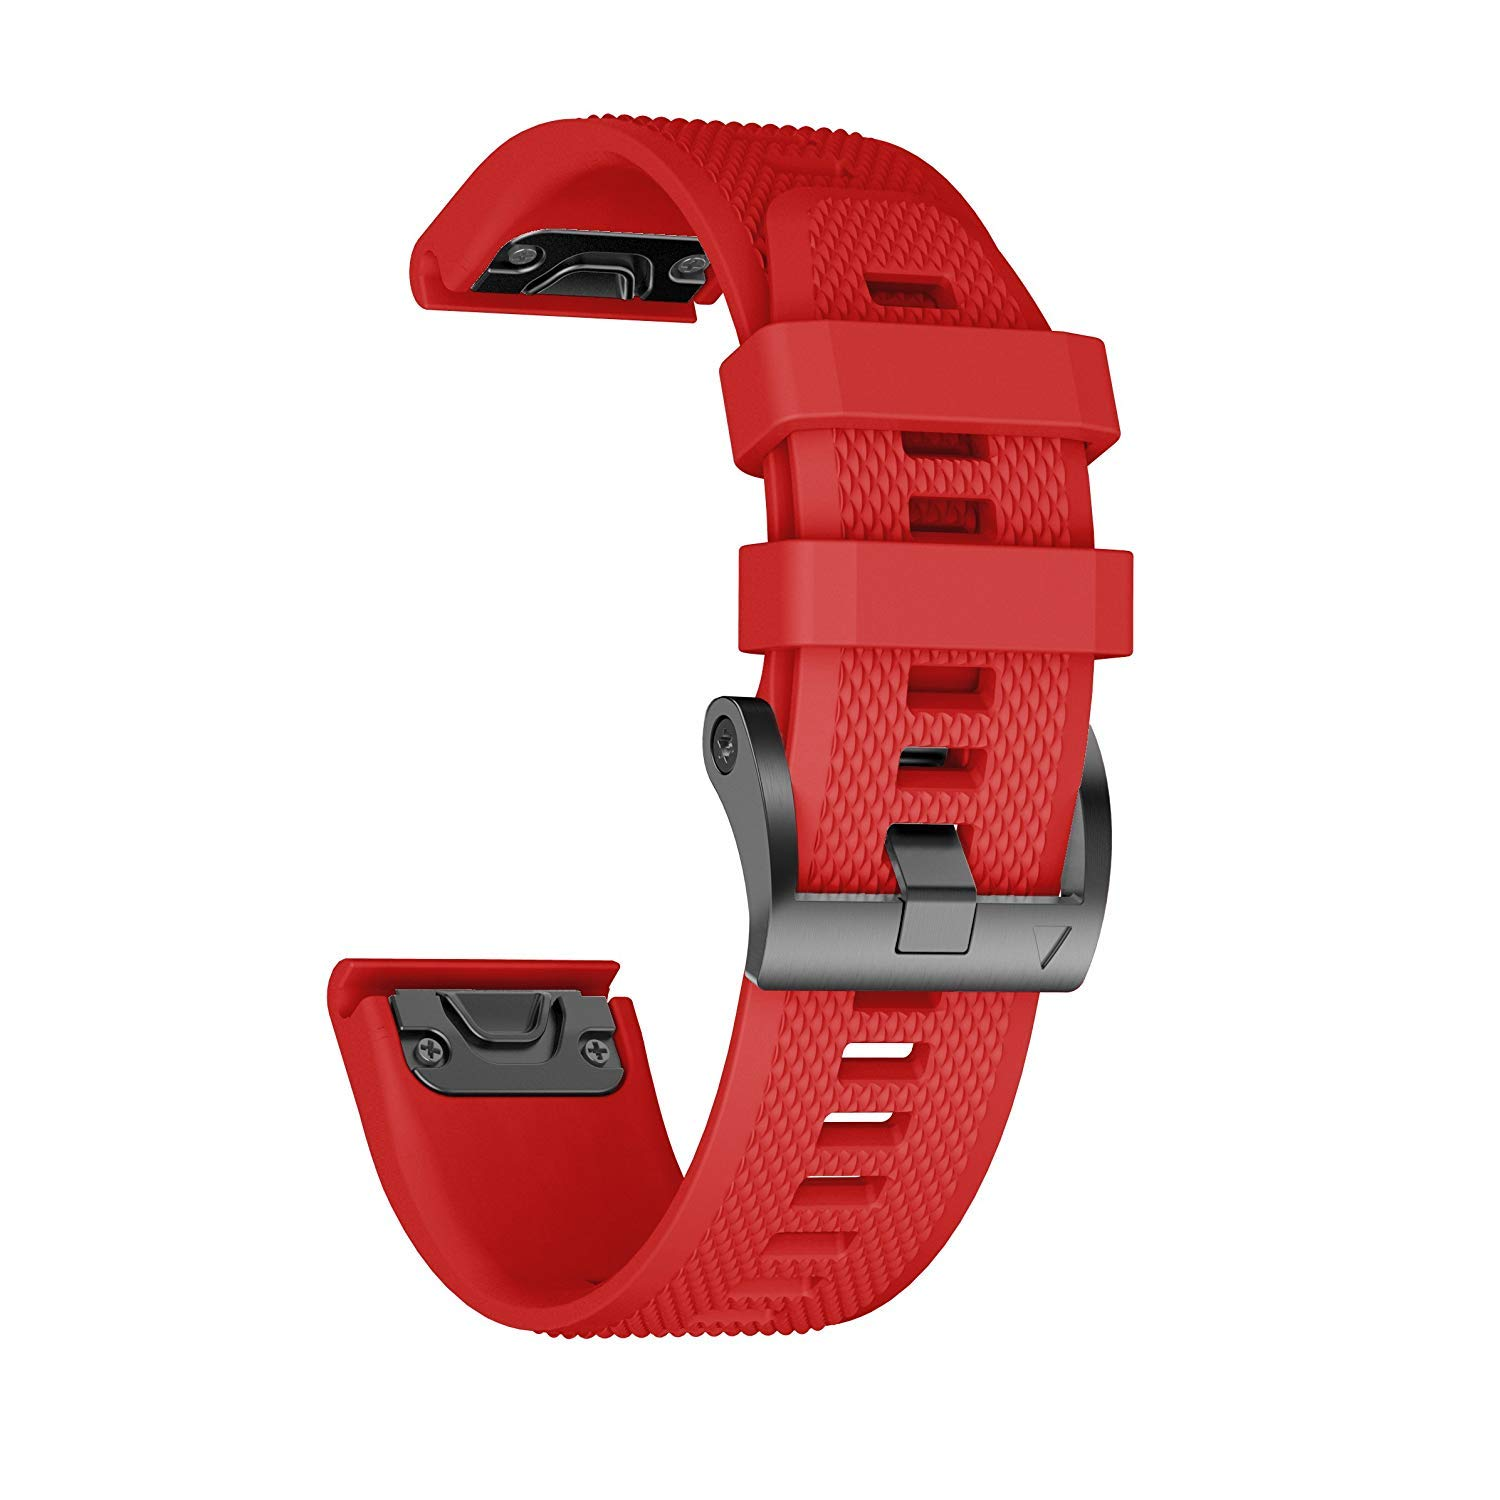 ANCOOL Compatible with Fenix 5 Band Easy Fit 22mm Width Soft Silicone Watch Strap Replacement for Fenix 5/Fenix 5 Plus/Forerunner 935/Approach S60/Quatix 5 - Red by ANCOOL